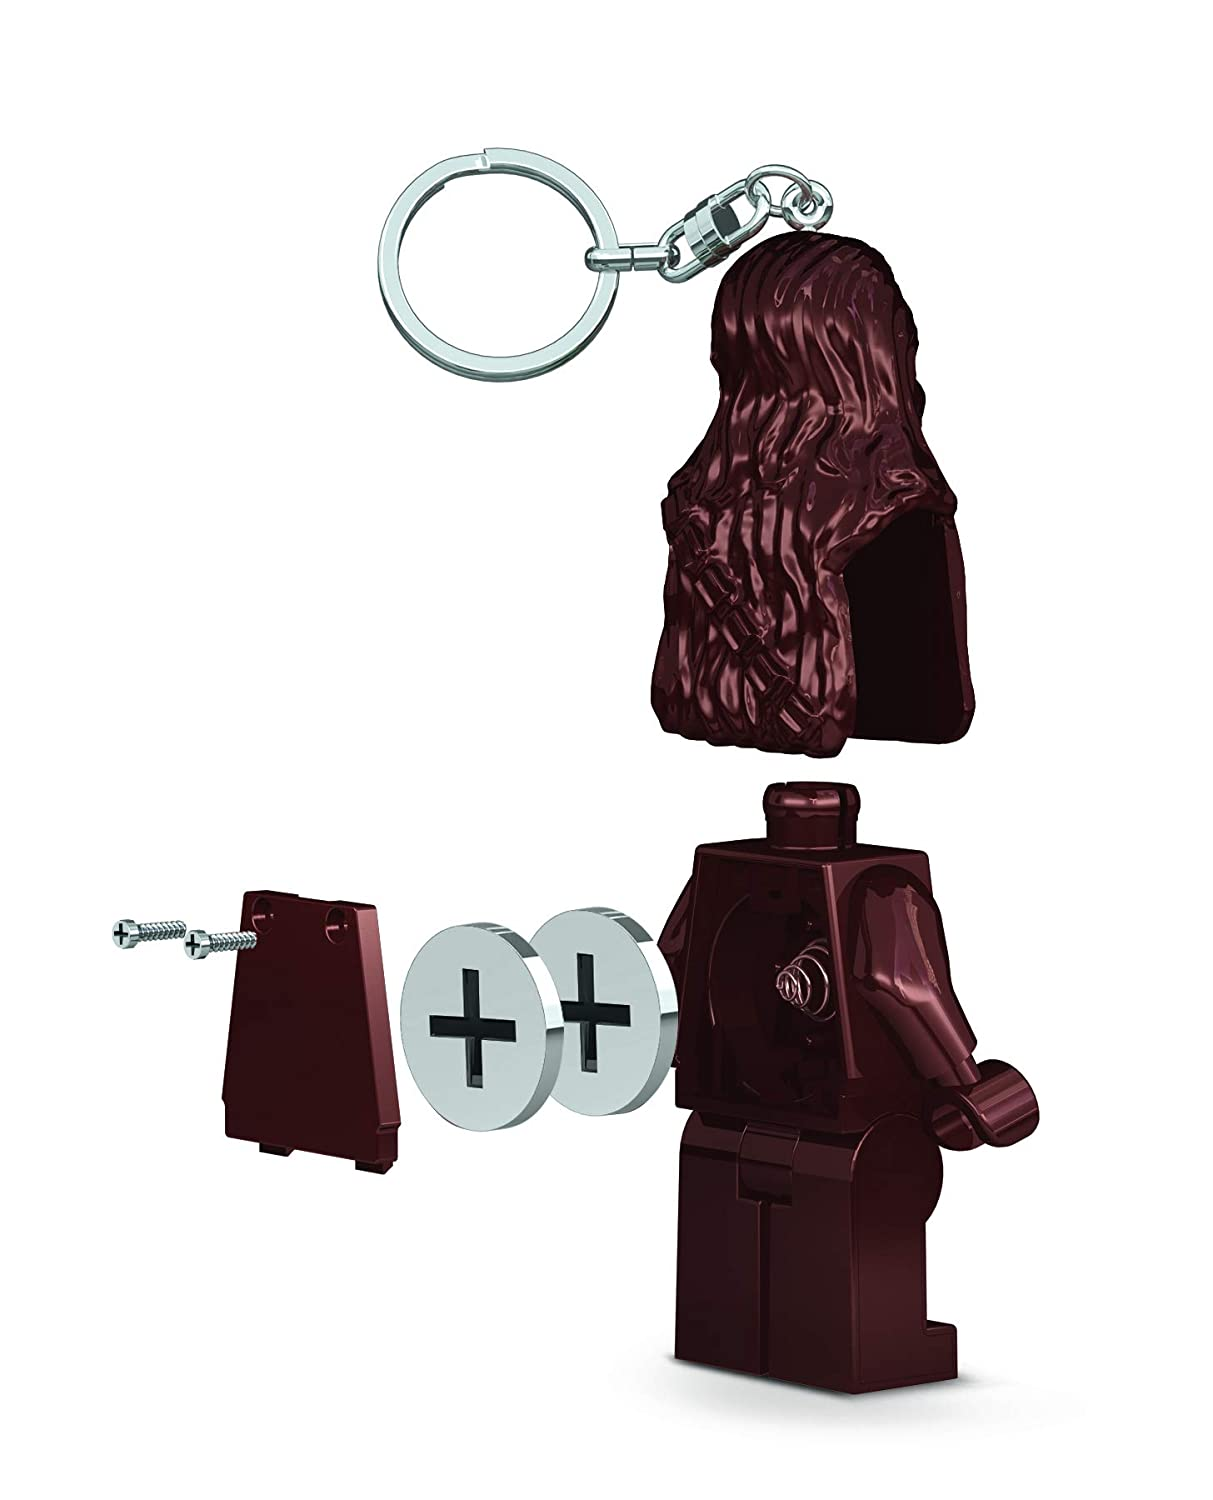 Amazon.com: LEGO Star Wars Chewbacca Keylight: Toys & Games